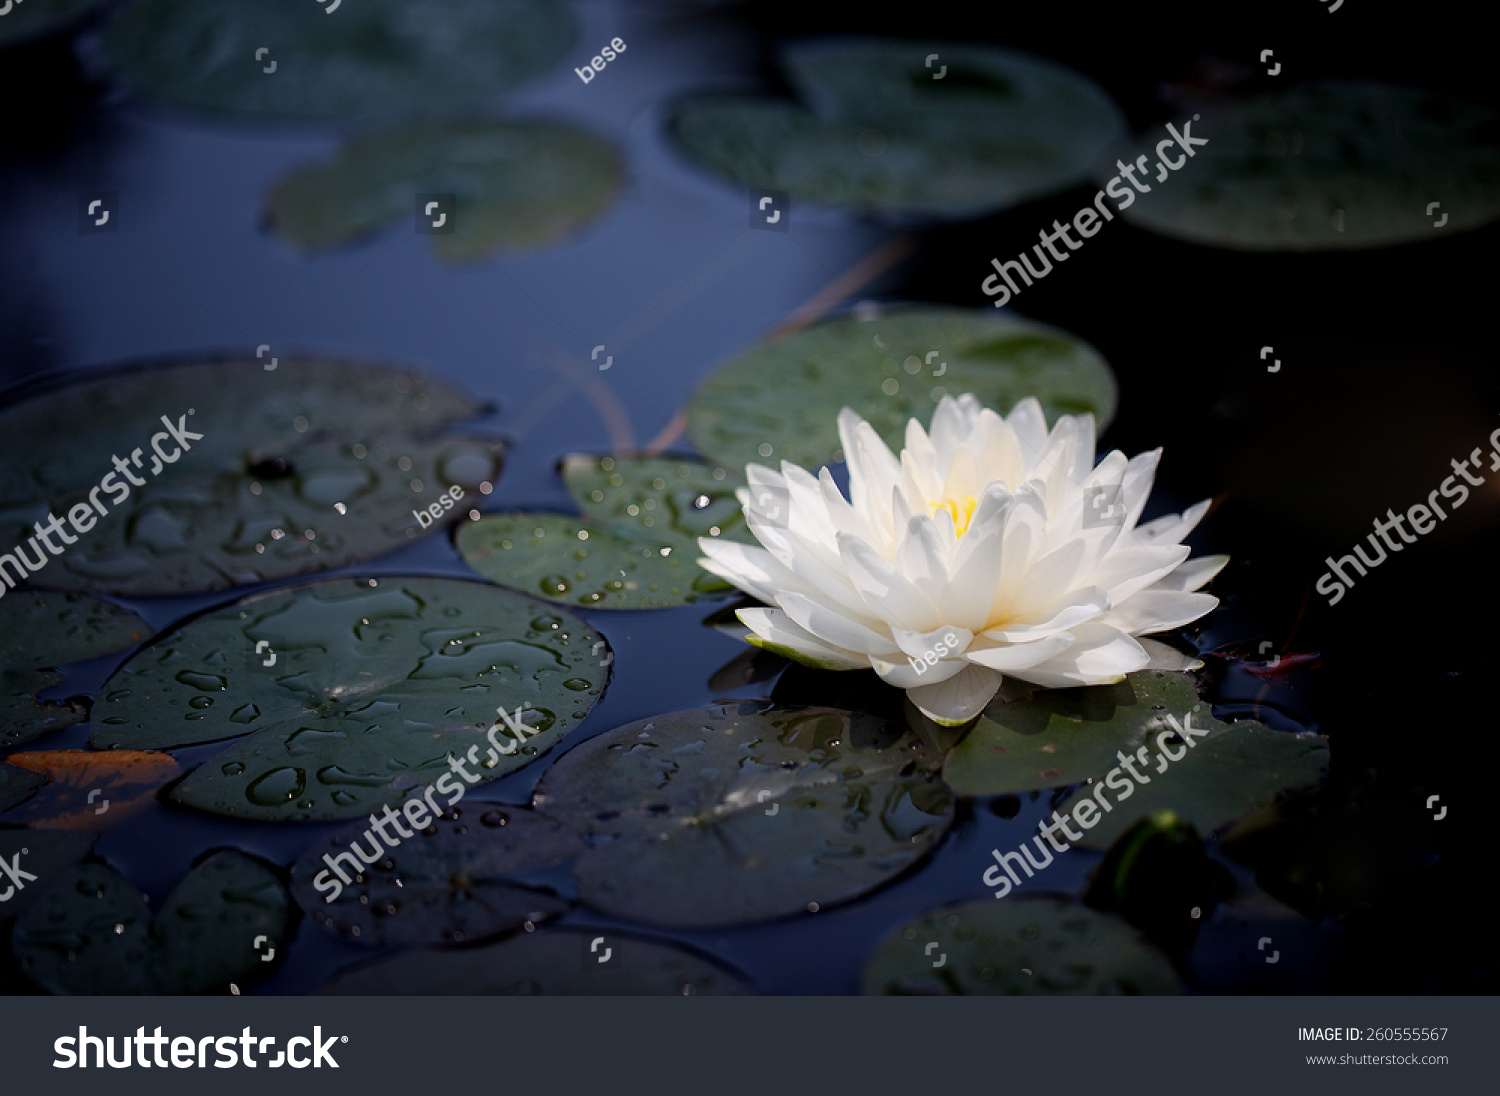 Waterlily lotus flowers floating on water stock photo for Floating flowers in water